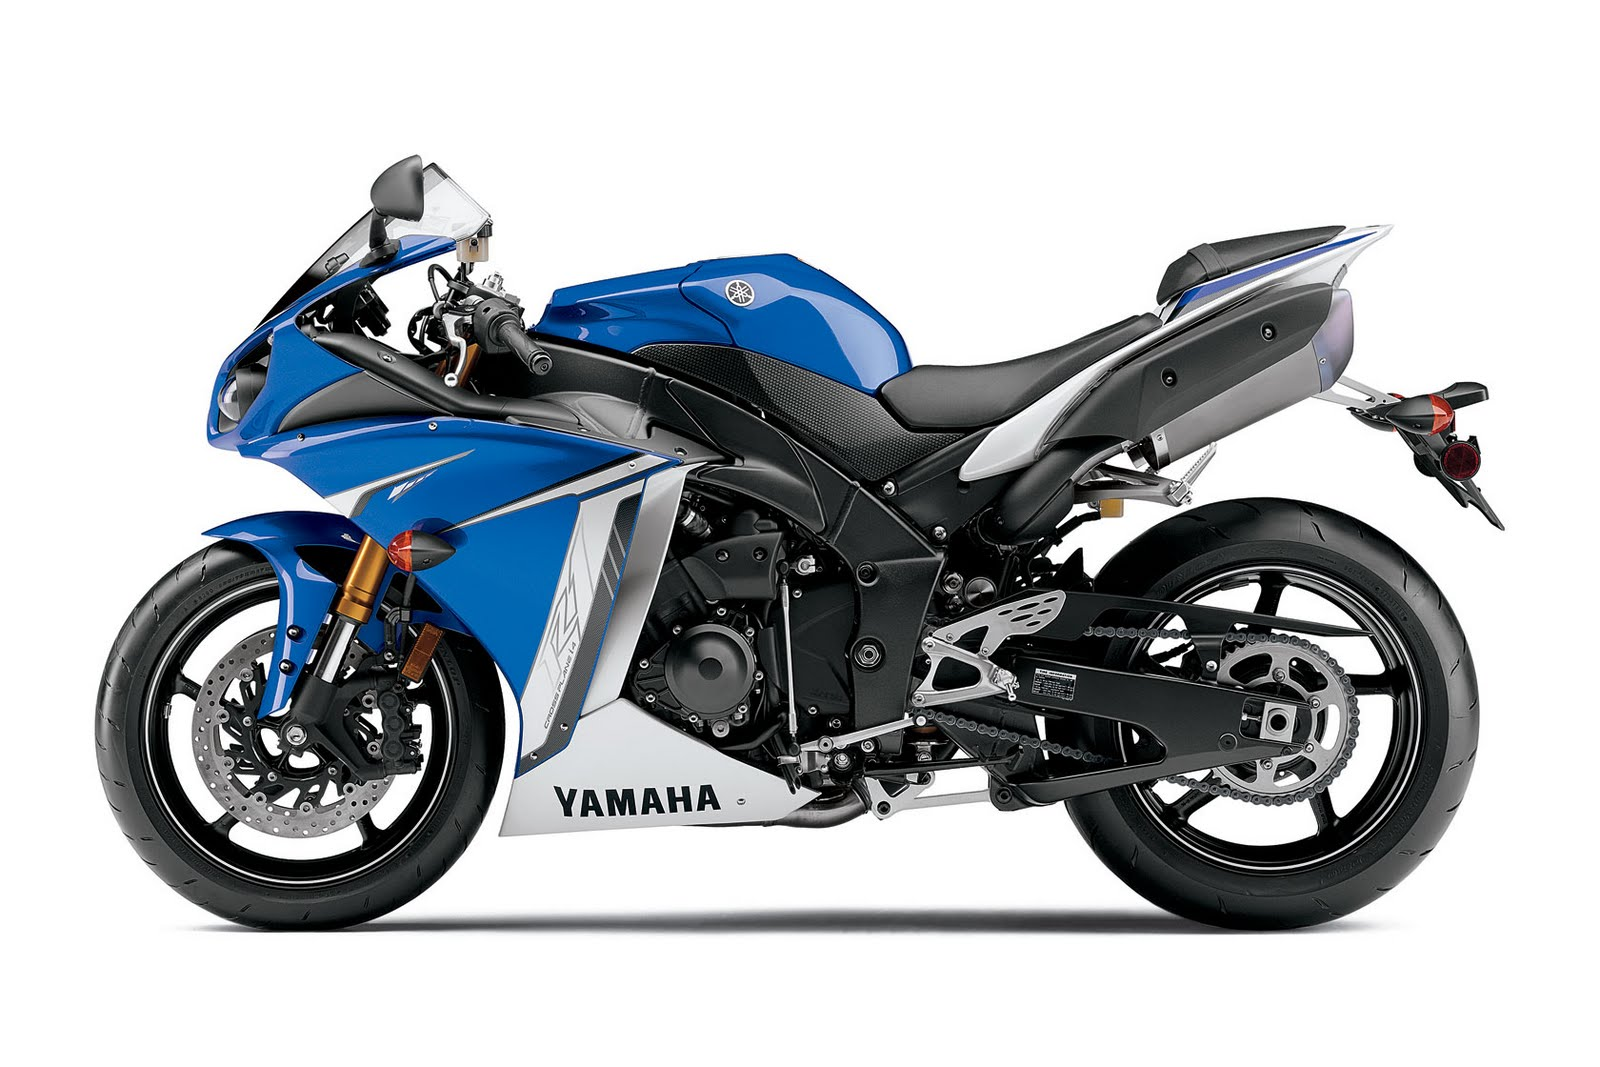 2011 Yamaha YZF-R1 Sports Bike